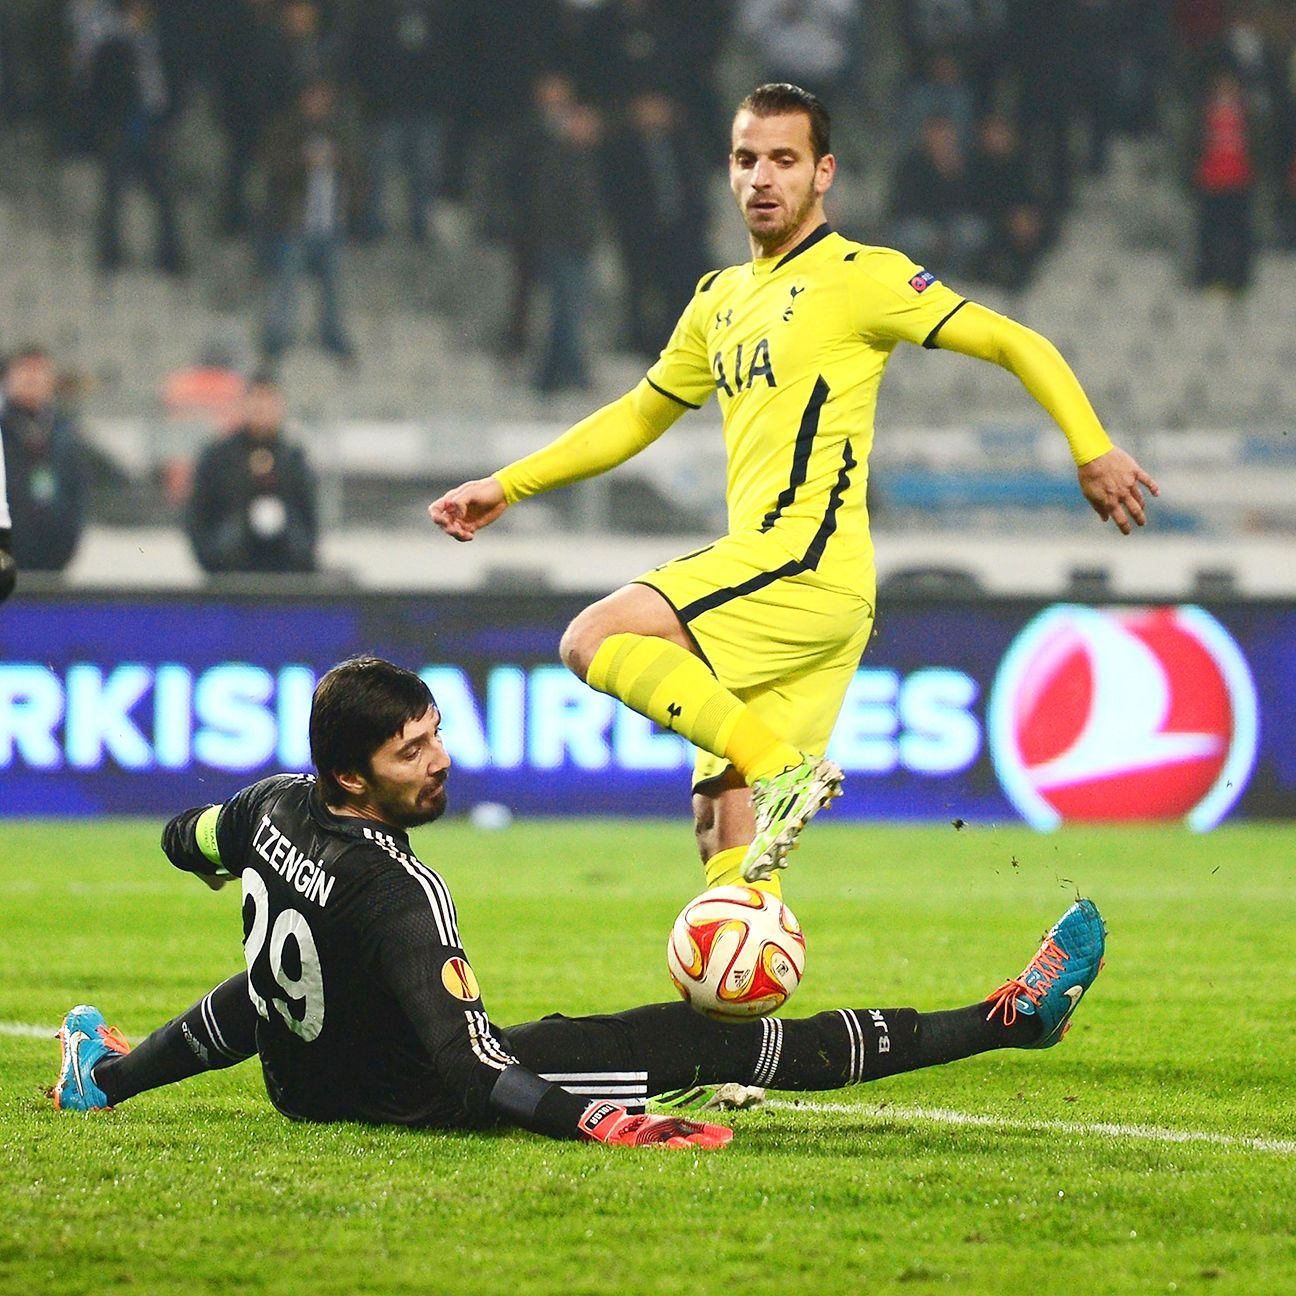 Roberto Soldado's scoring struggles continued Thursday night in Turkey.